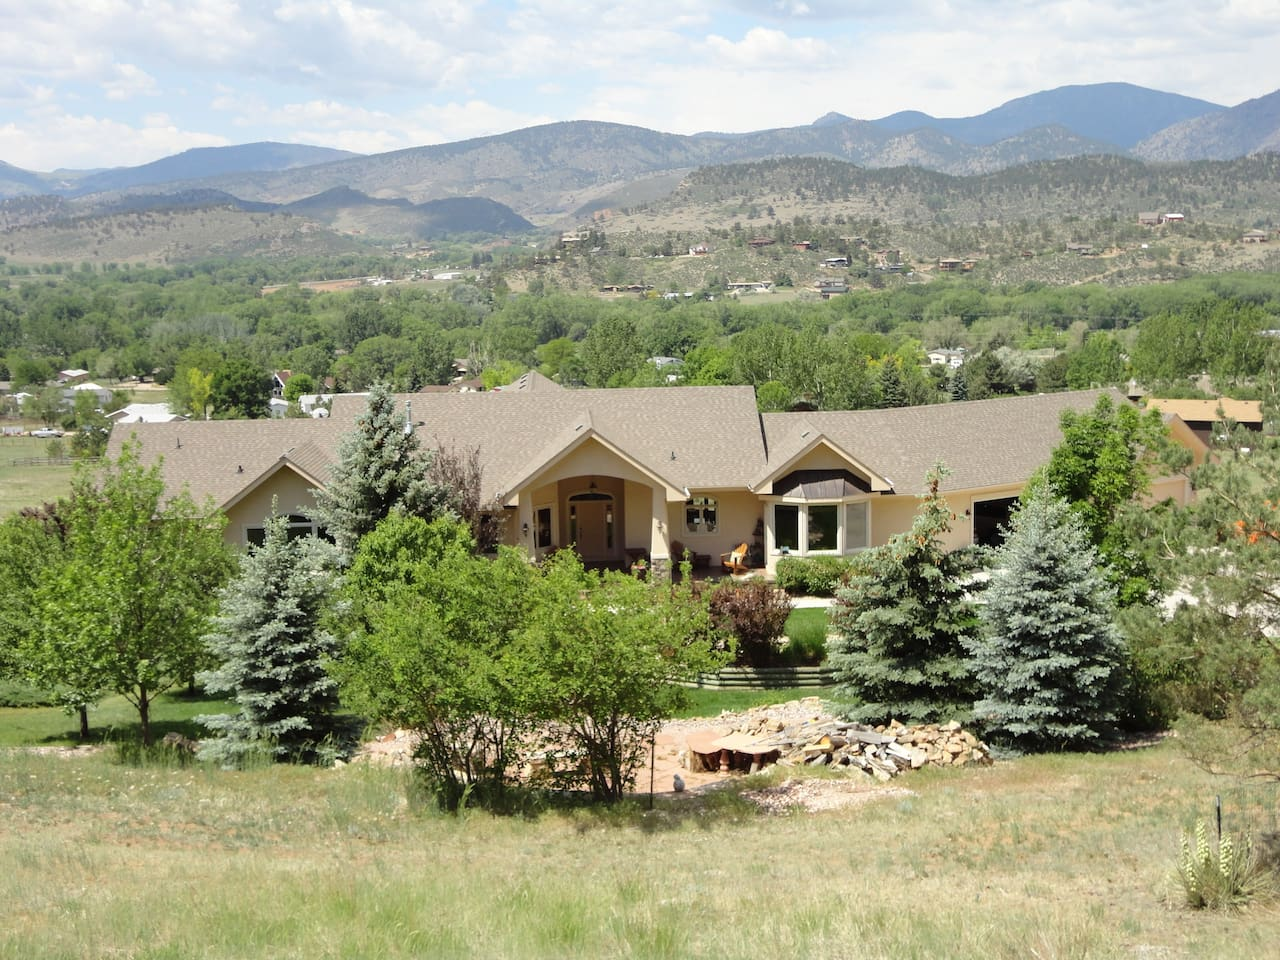 Rocky mountain vacation dream home houses for rent in for Dream home rentals